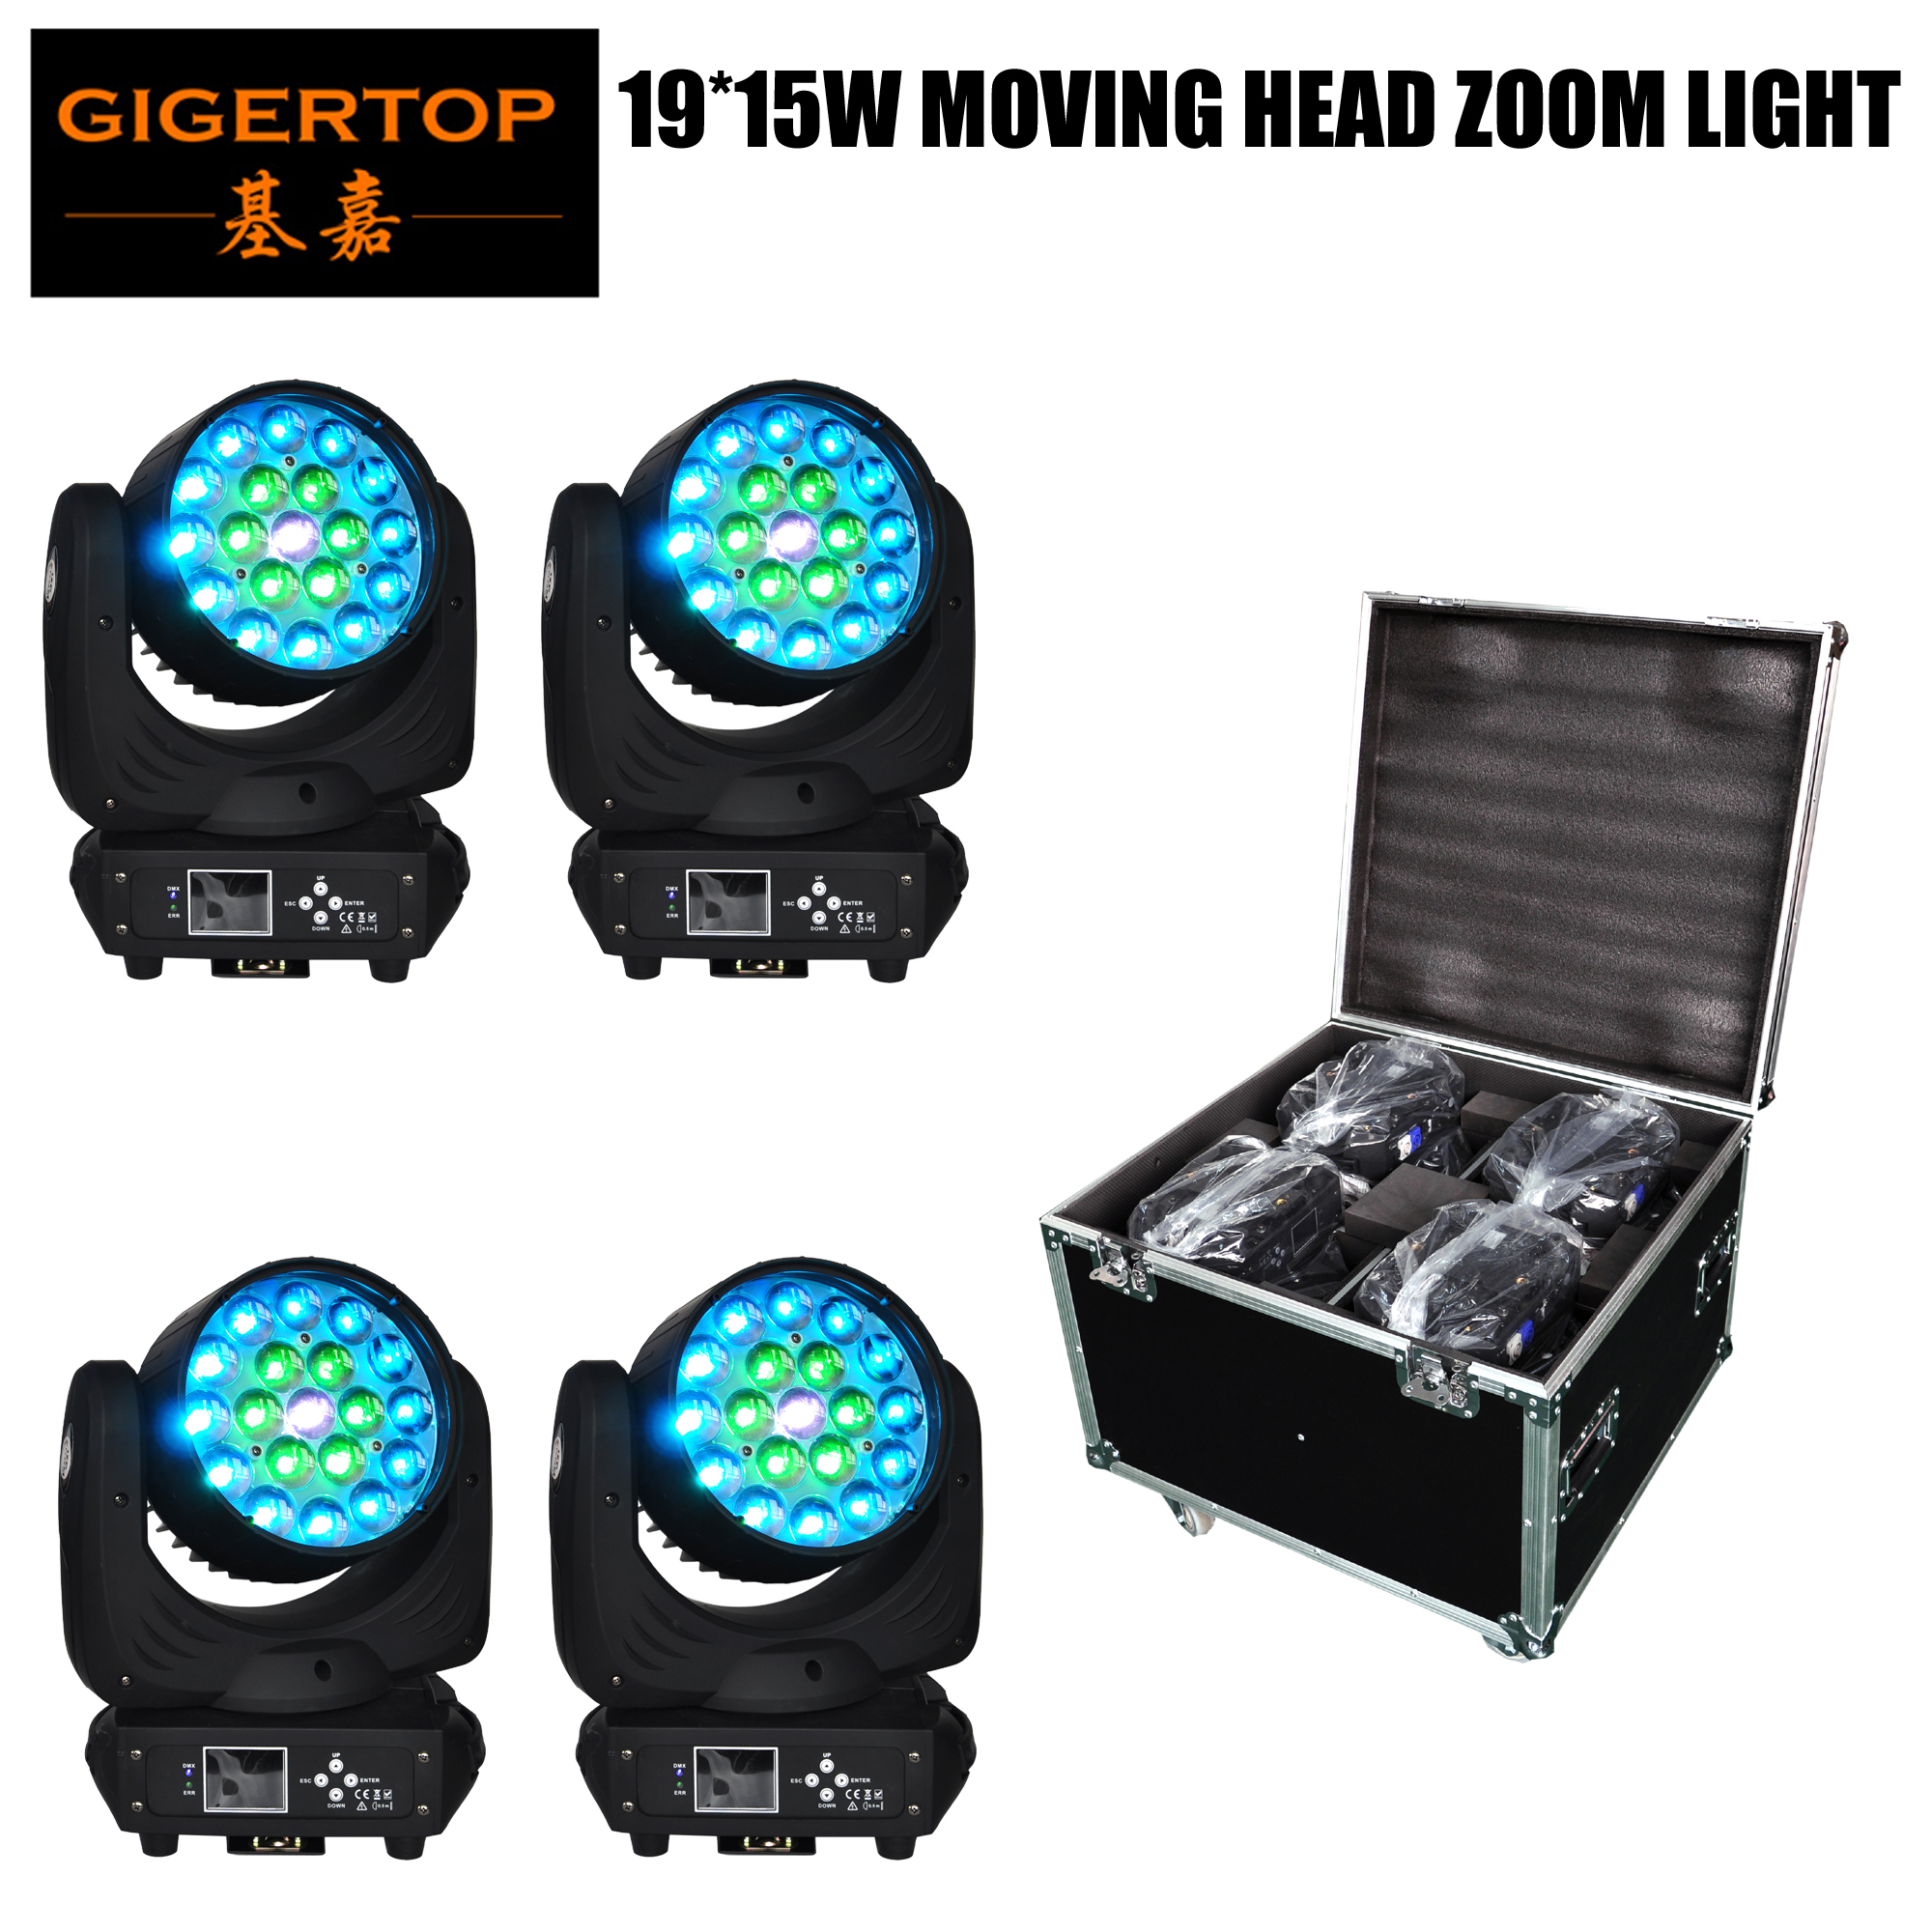 Flight Case 4in1 Pack 19 x 15W RGBW Led Moving Head Zoom Spot Wash light DMX Disco Party Club DJ Equipment Stage Effect Lights flightcase light green nail polishlight weight sewing machine - title=